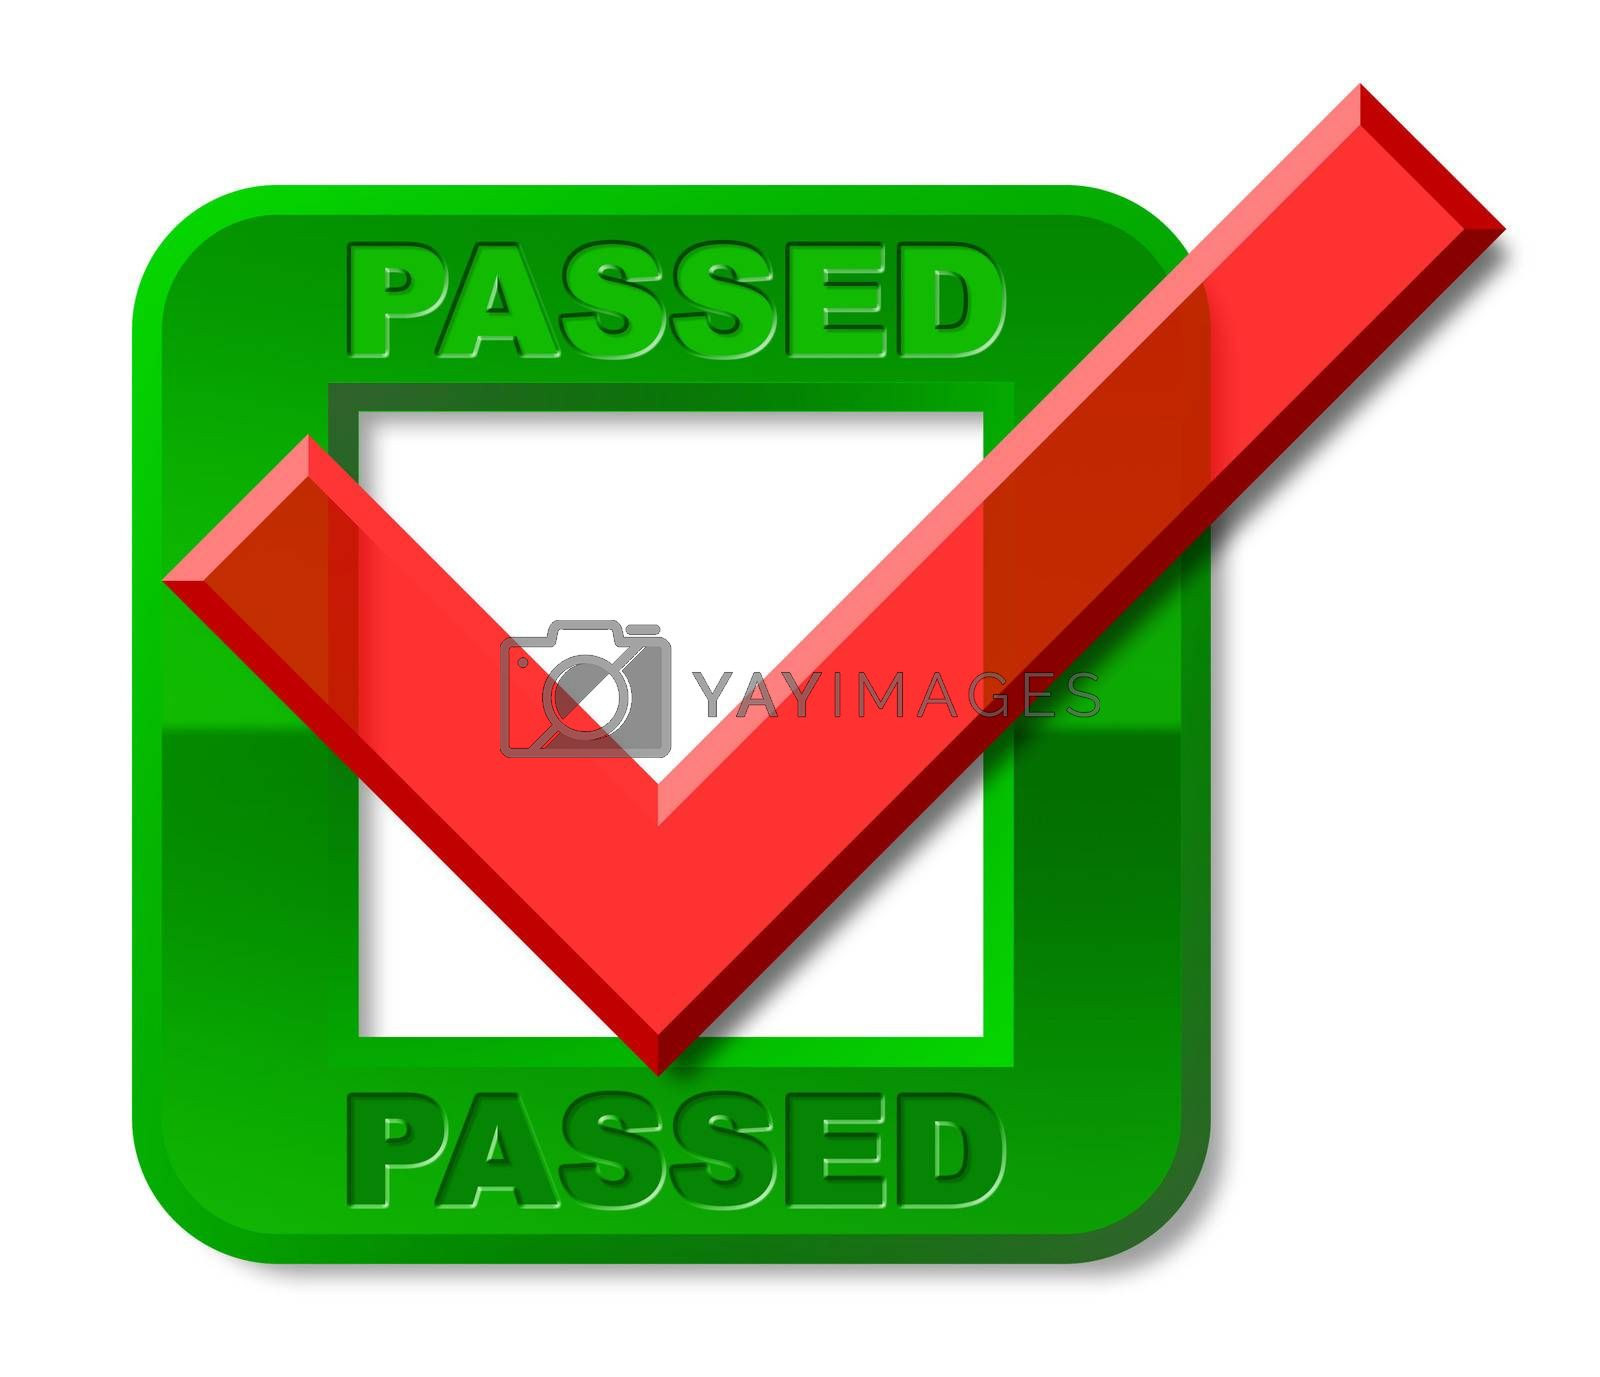 Passed Tick Indicates Passing Check And Ratified by stuartmiles